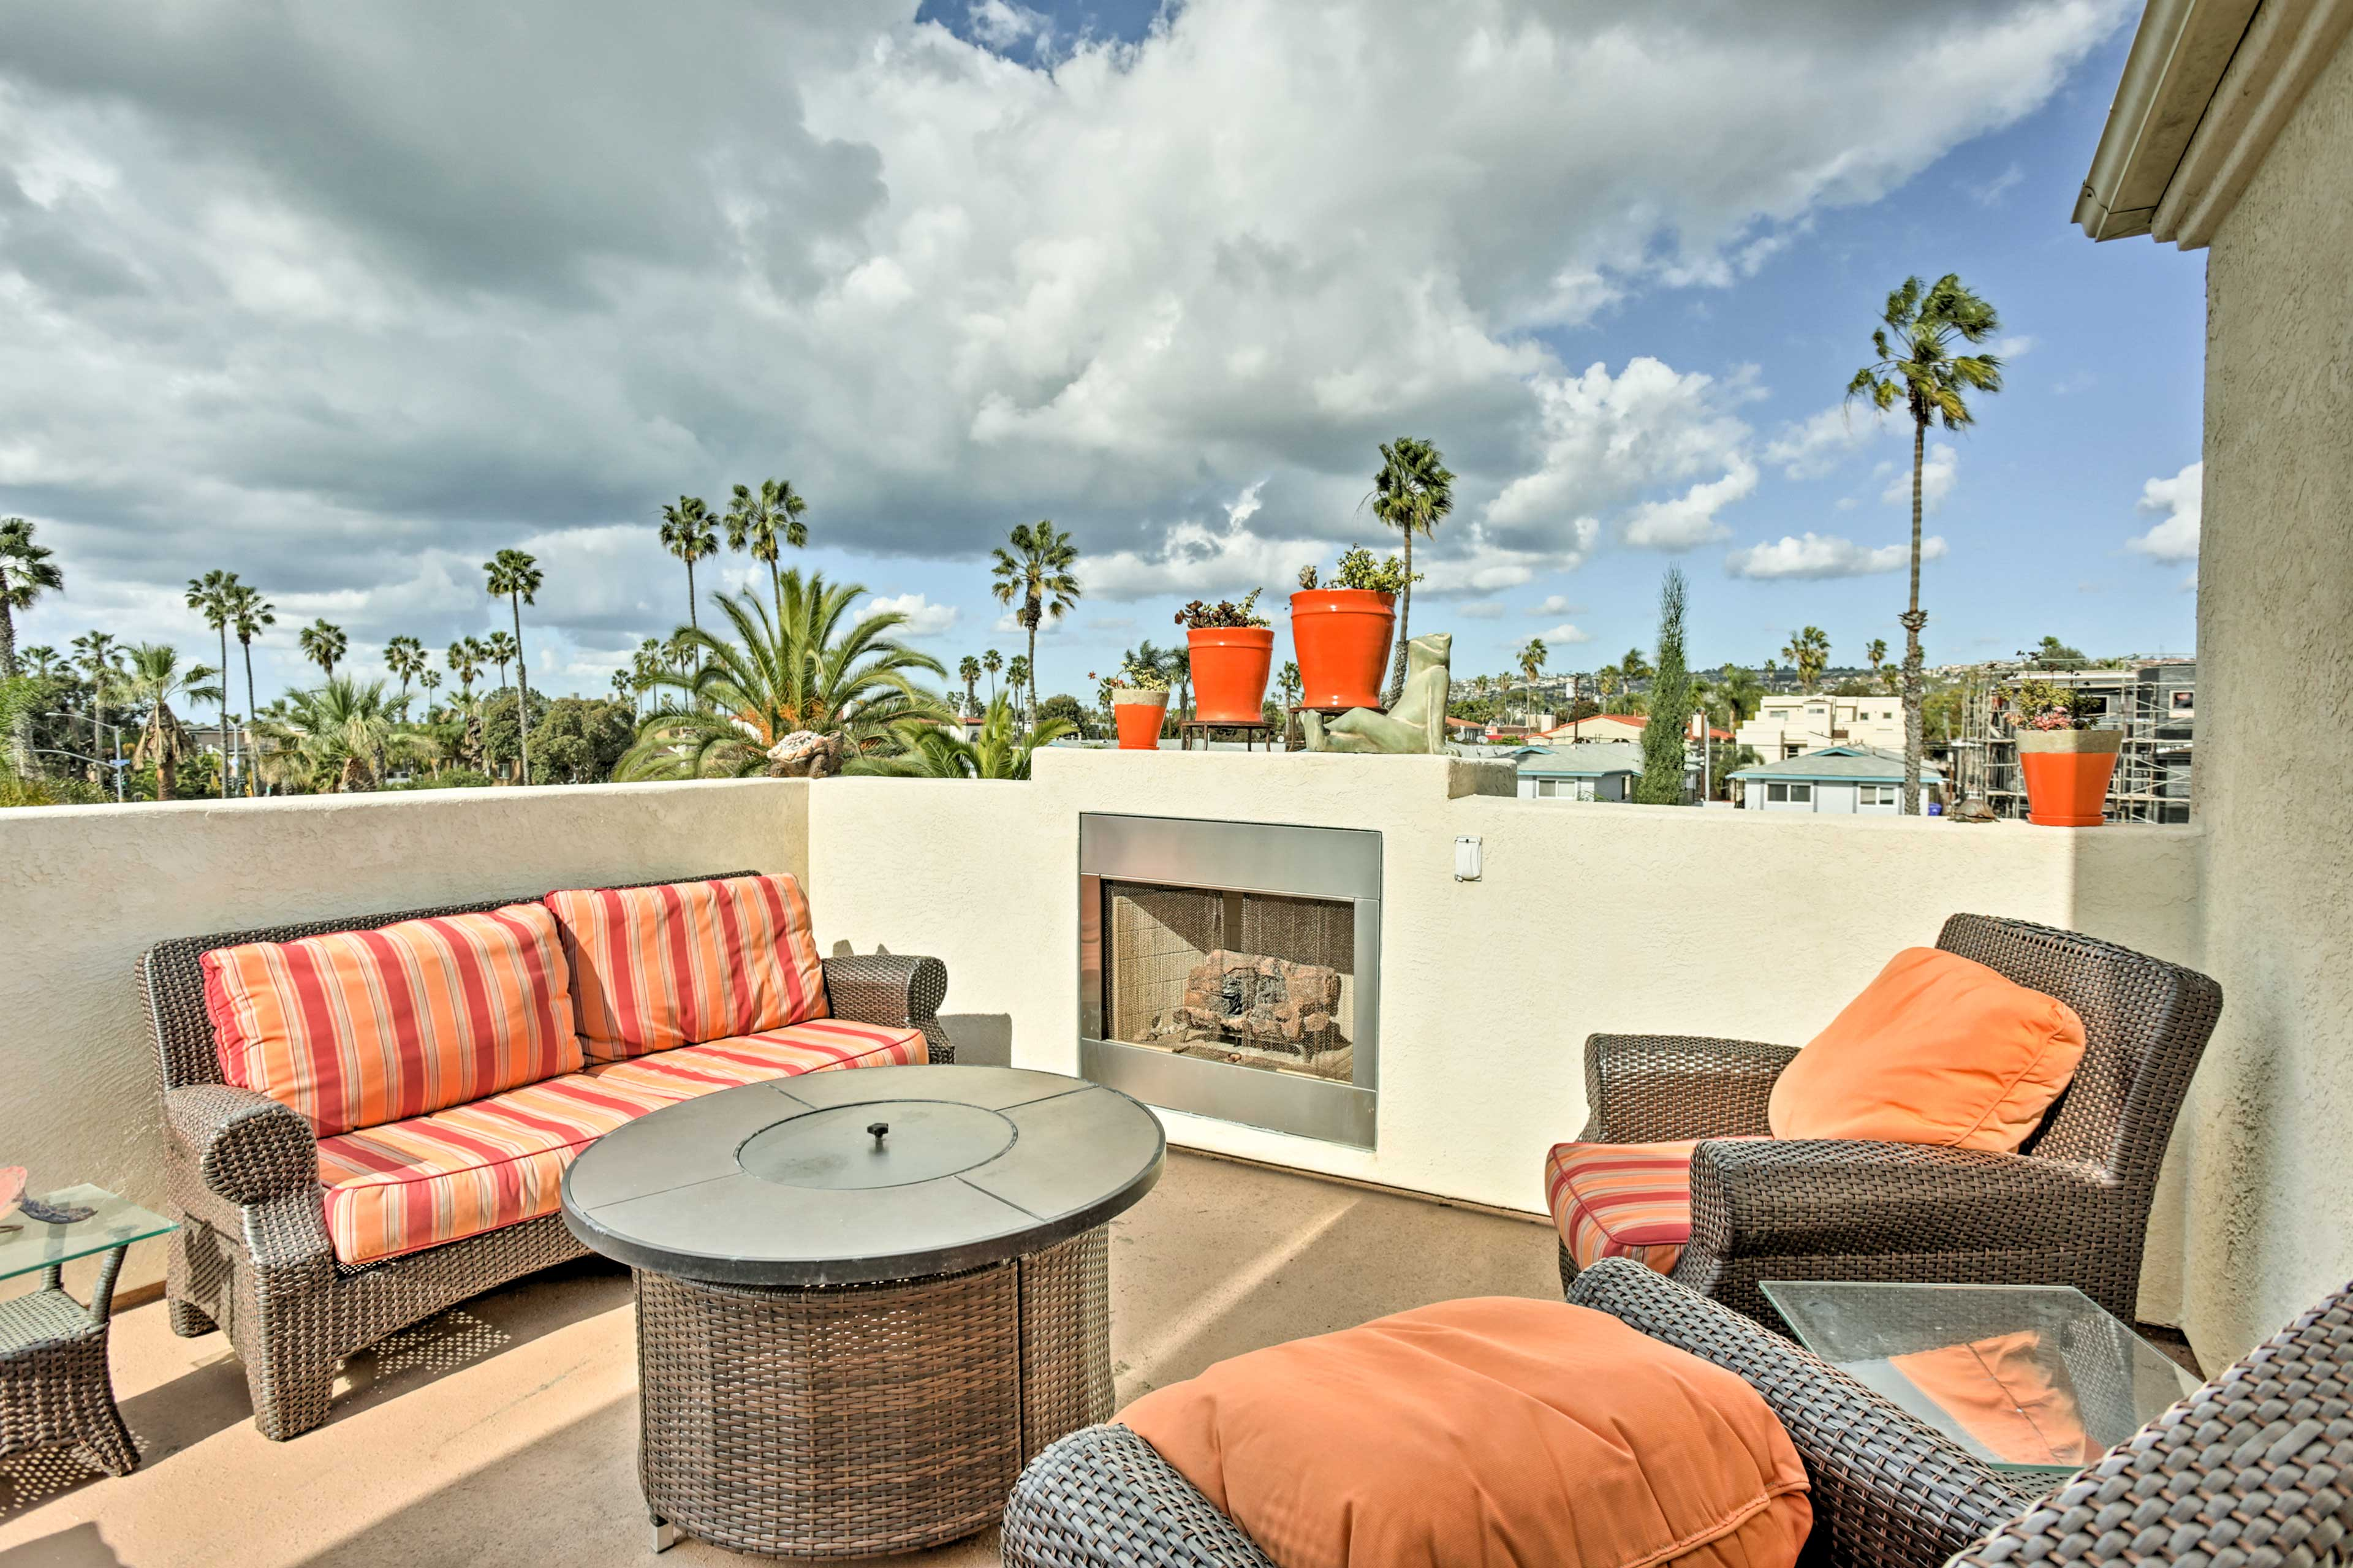 Soak up the sun from the private patio of this colorful 2BR, 2.5-bath townhome!